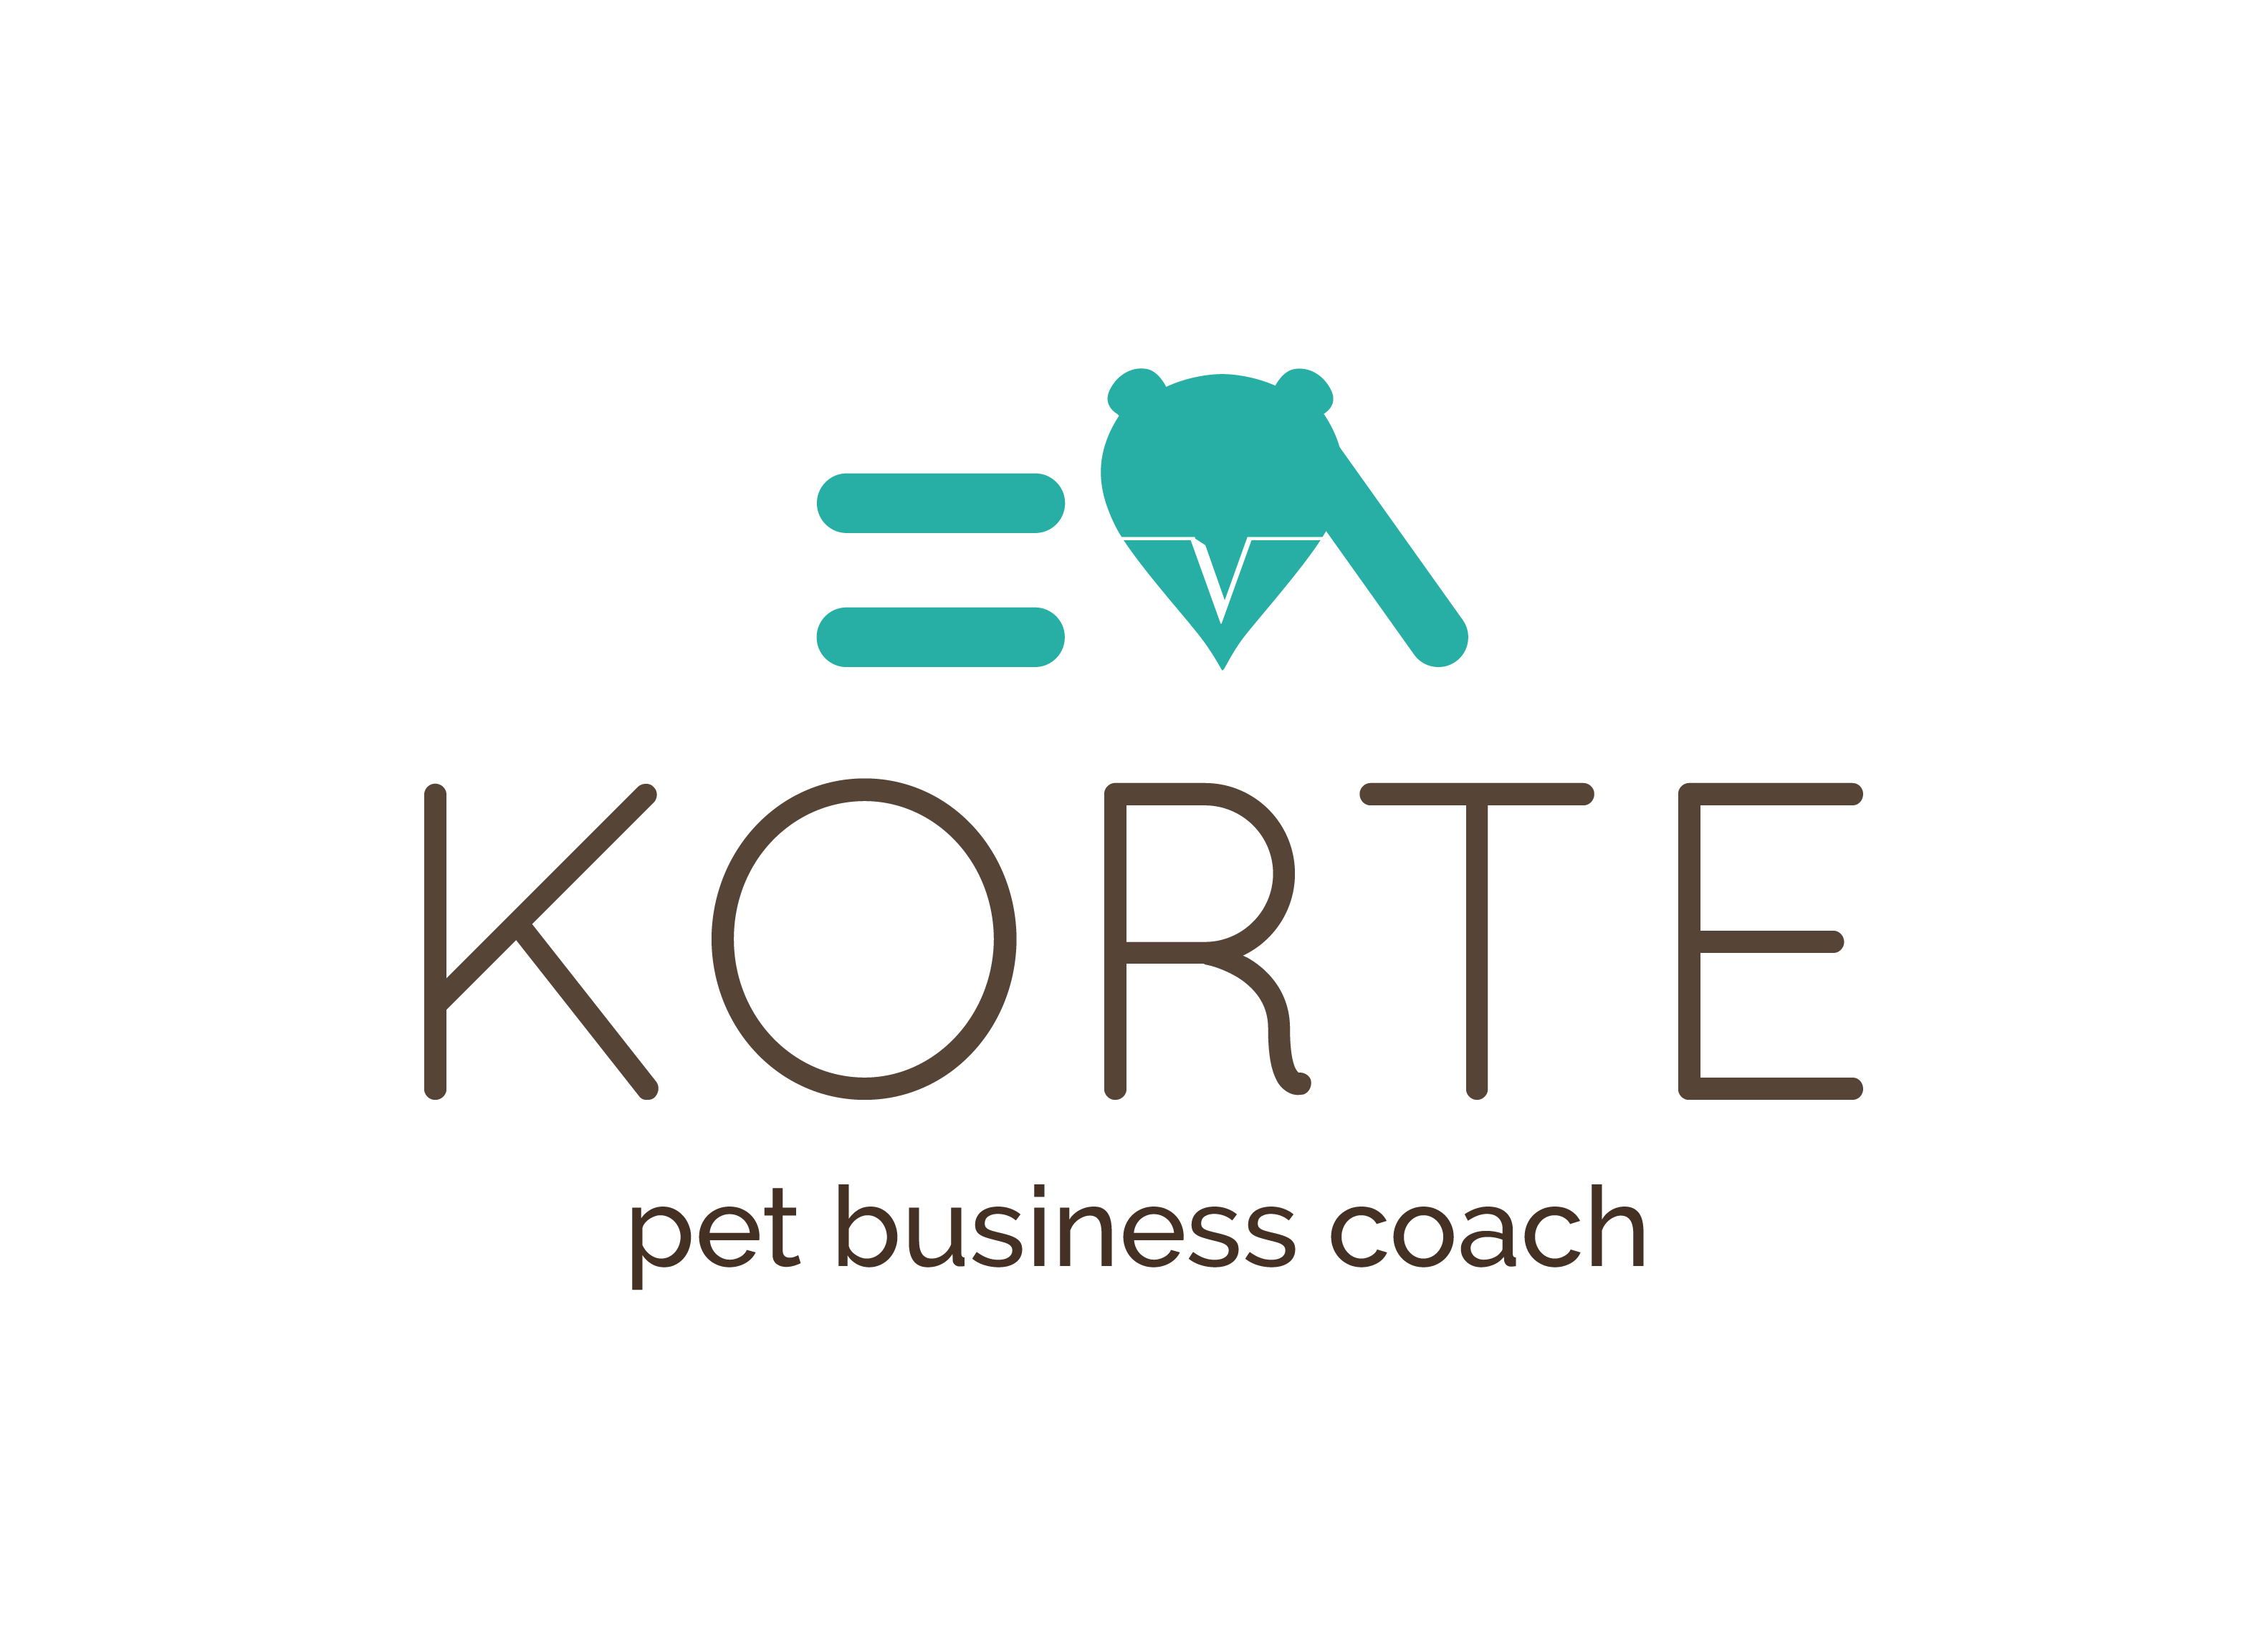 Eva Korte Tierbusiness Pet business Coach